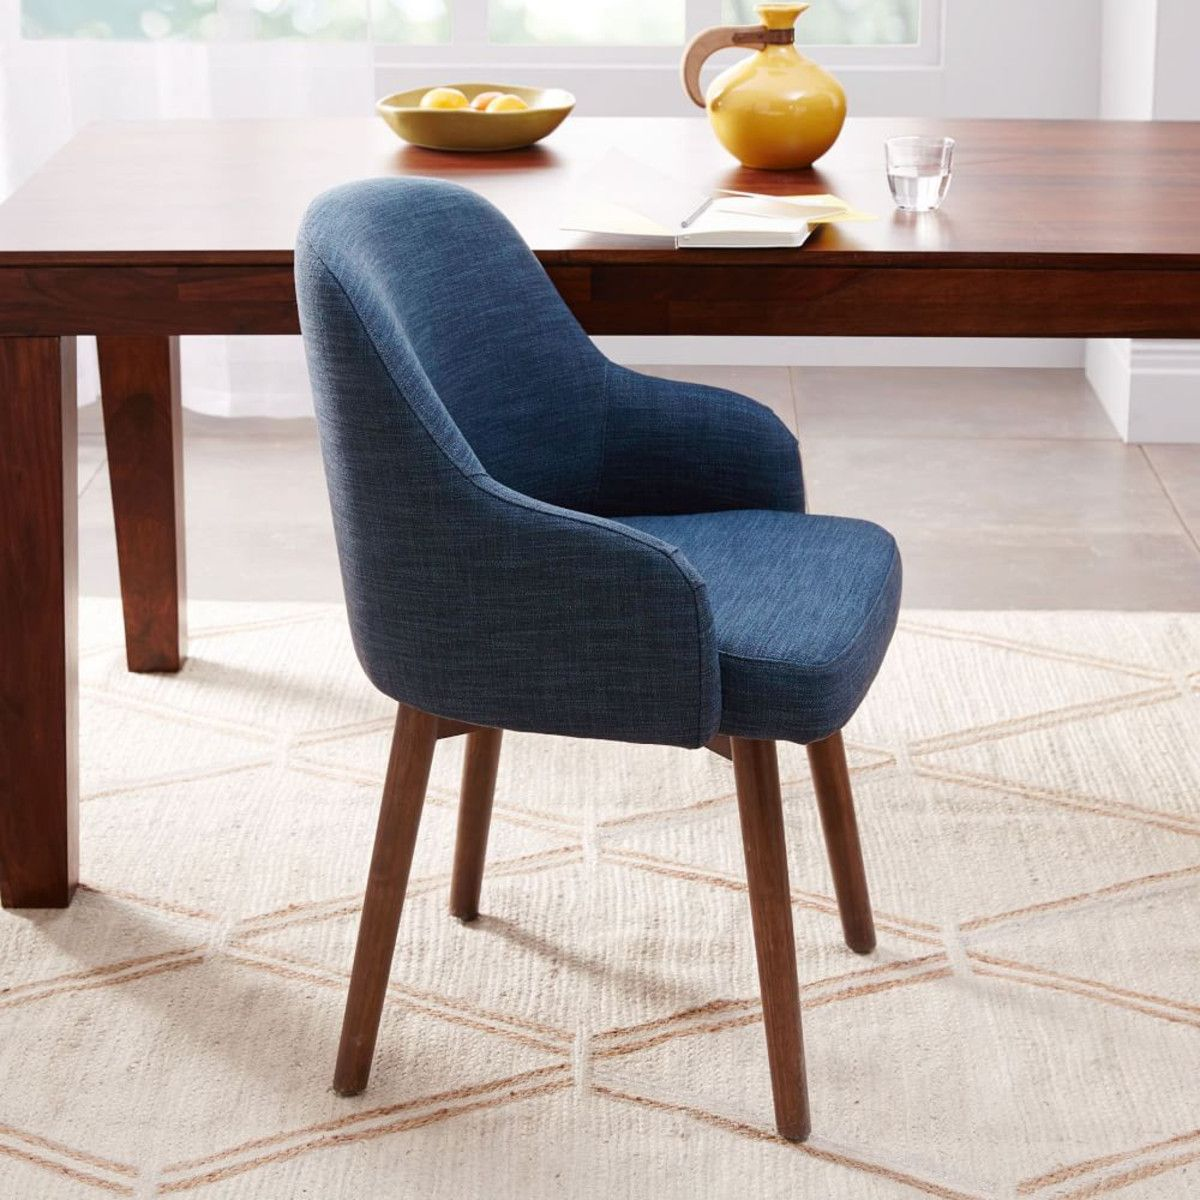 modern grey dining chairs uk room on wheels saddle chair west elm knollys road